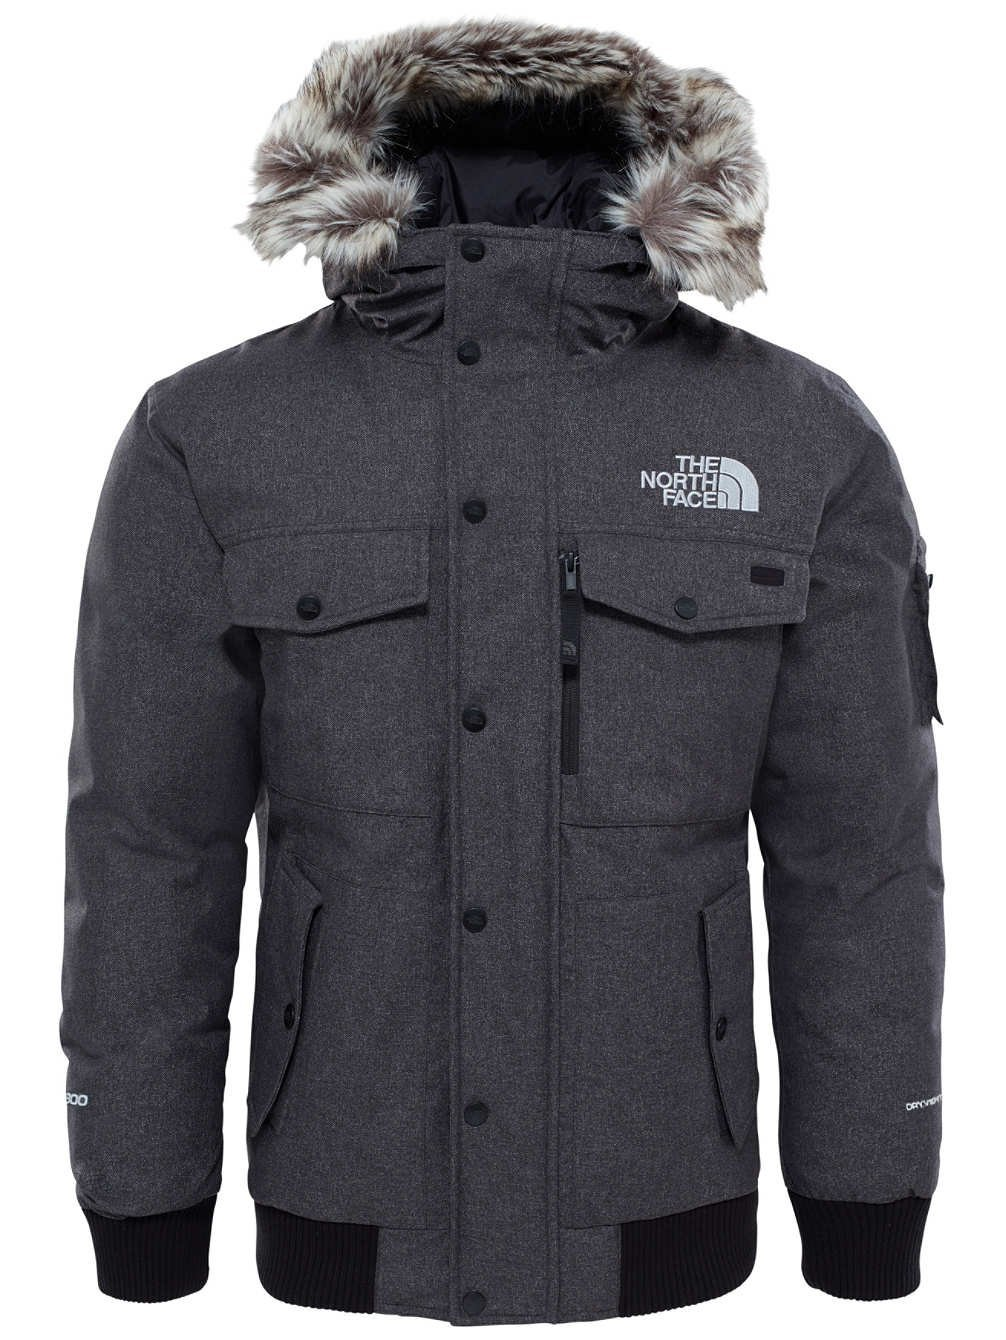 the north face men 39 s gotham plush winter jacket coat with hood 190850792931 ebay. Black Bedroom Furniture Sets. Home Design Ideas